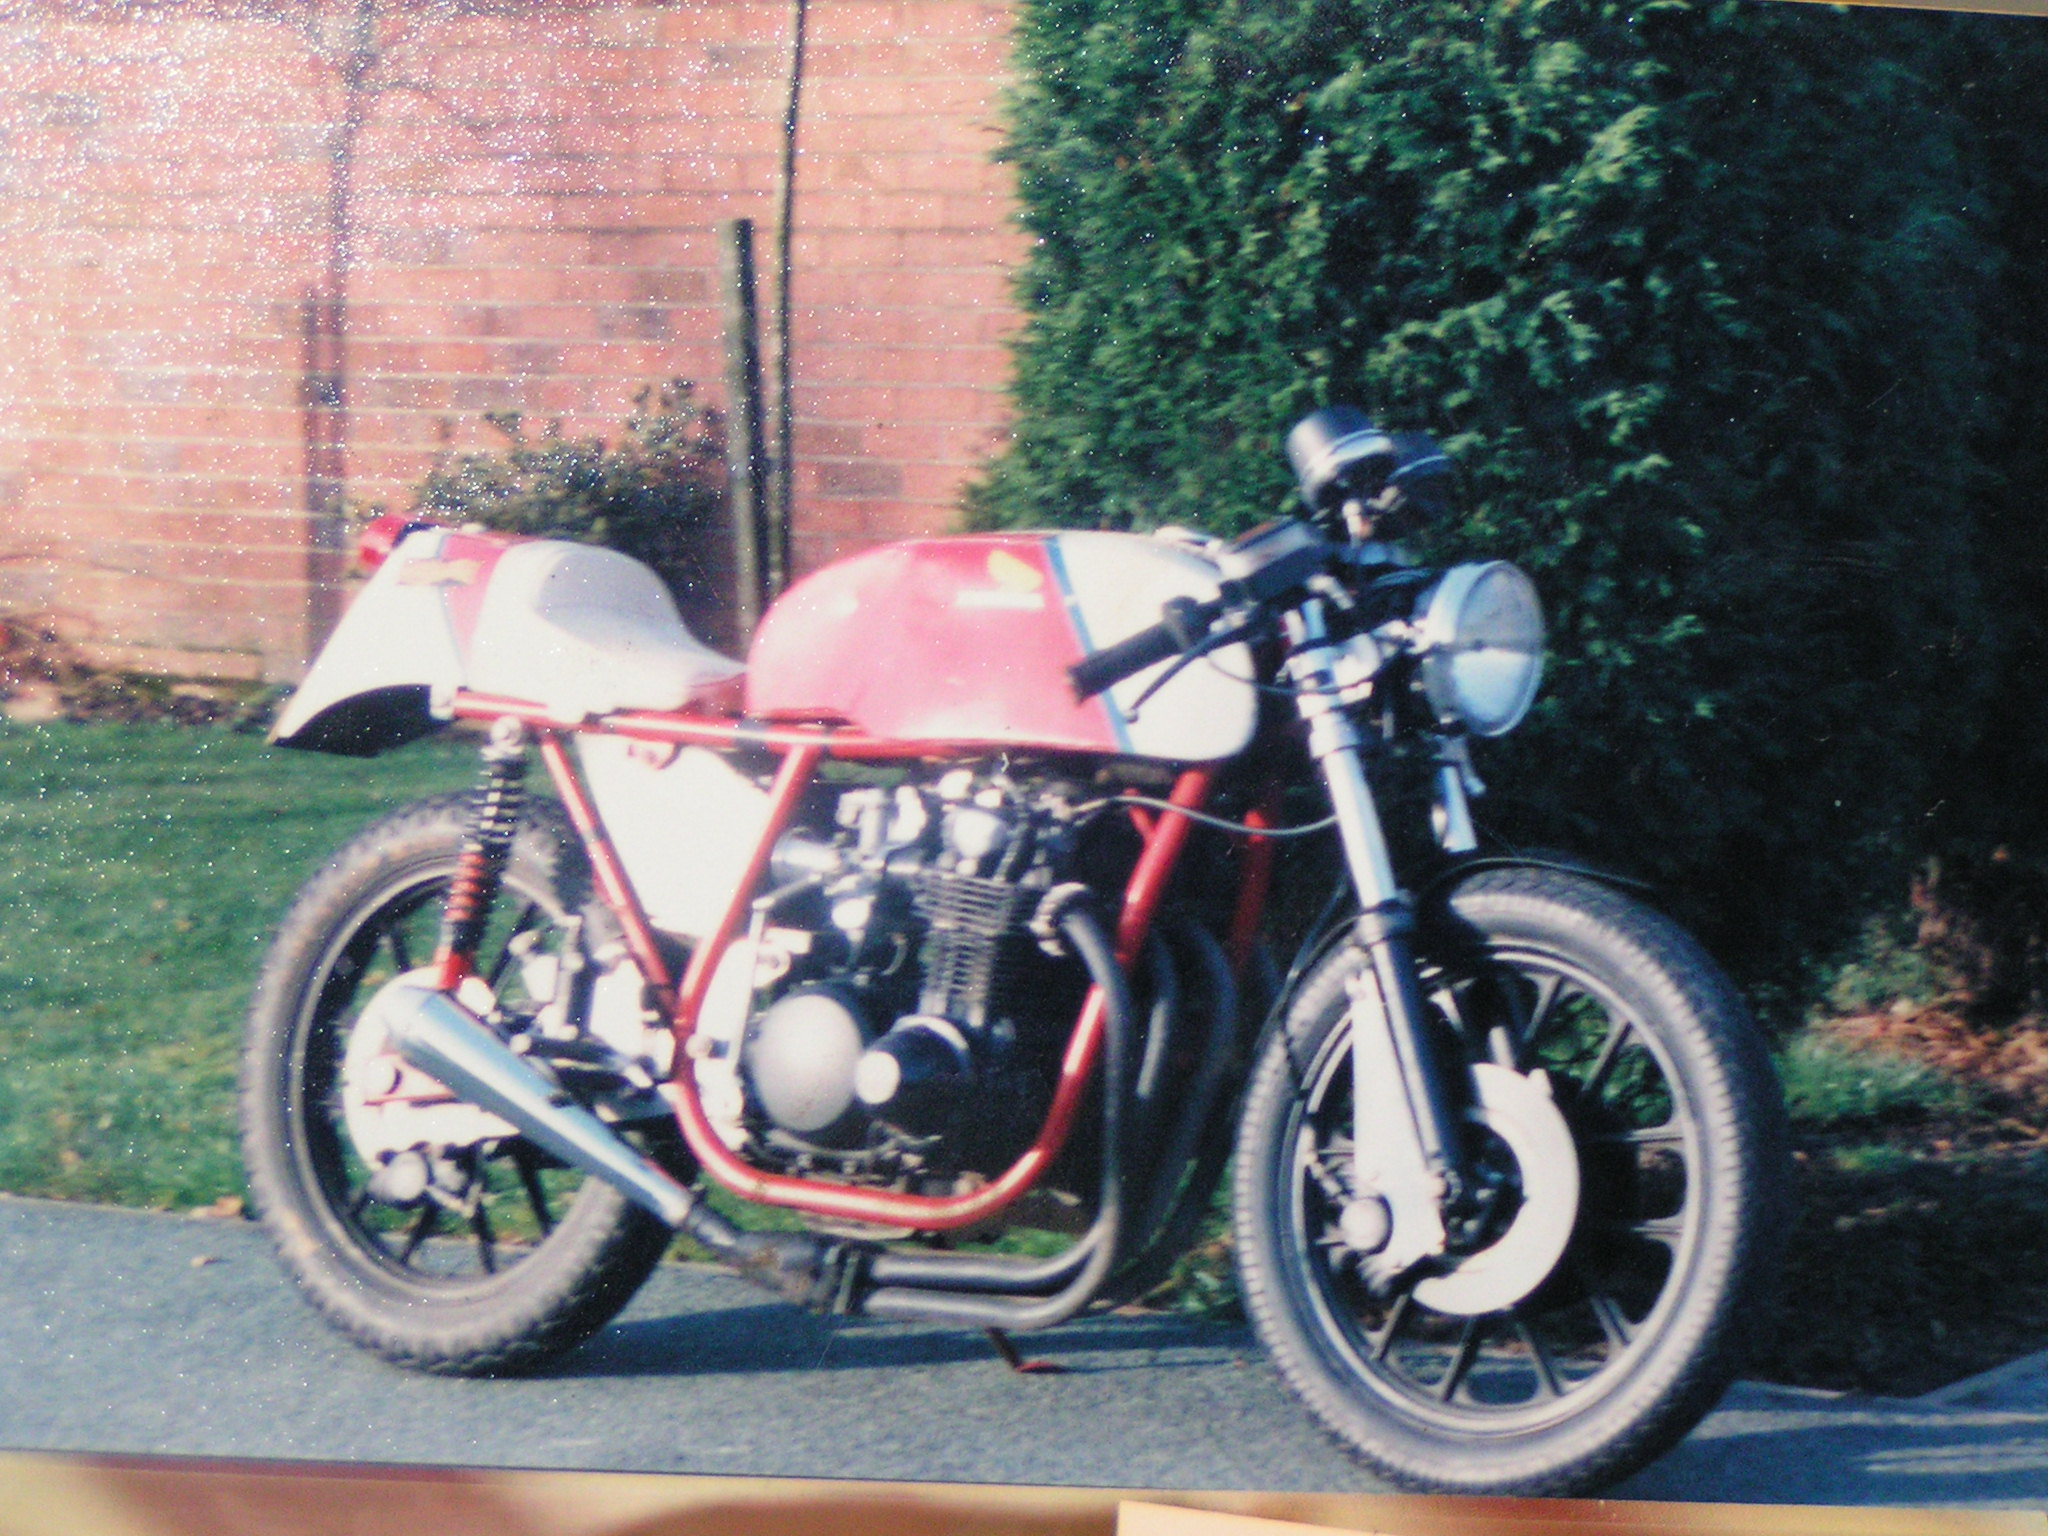 This was my Dresda CB500/4. This photo was taken around 1987.  Owner: Chris Morrison from The Netherlands